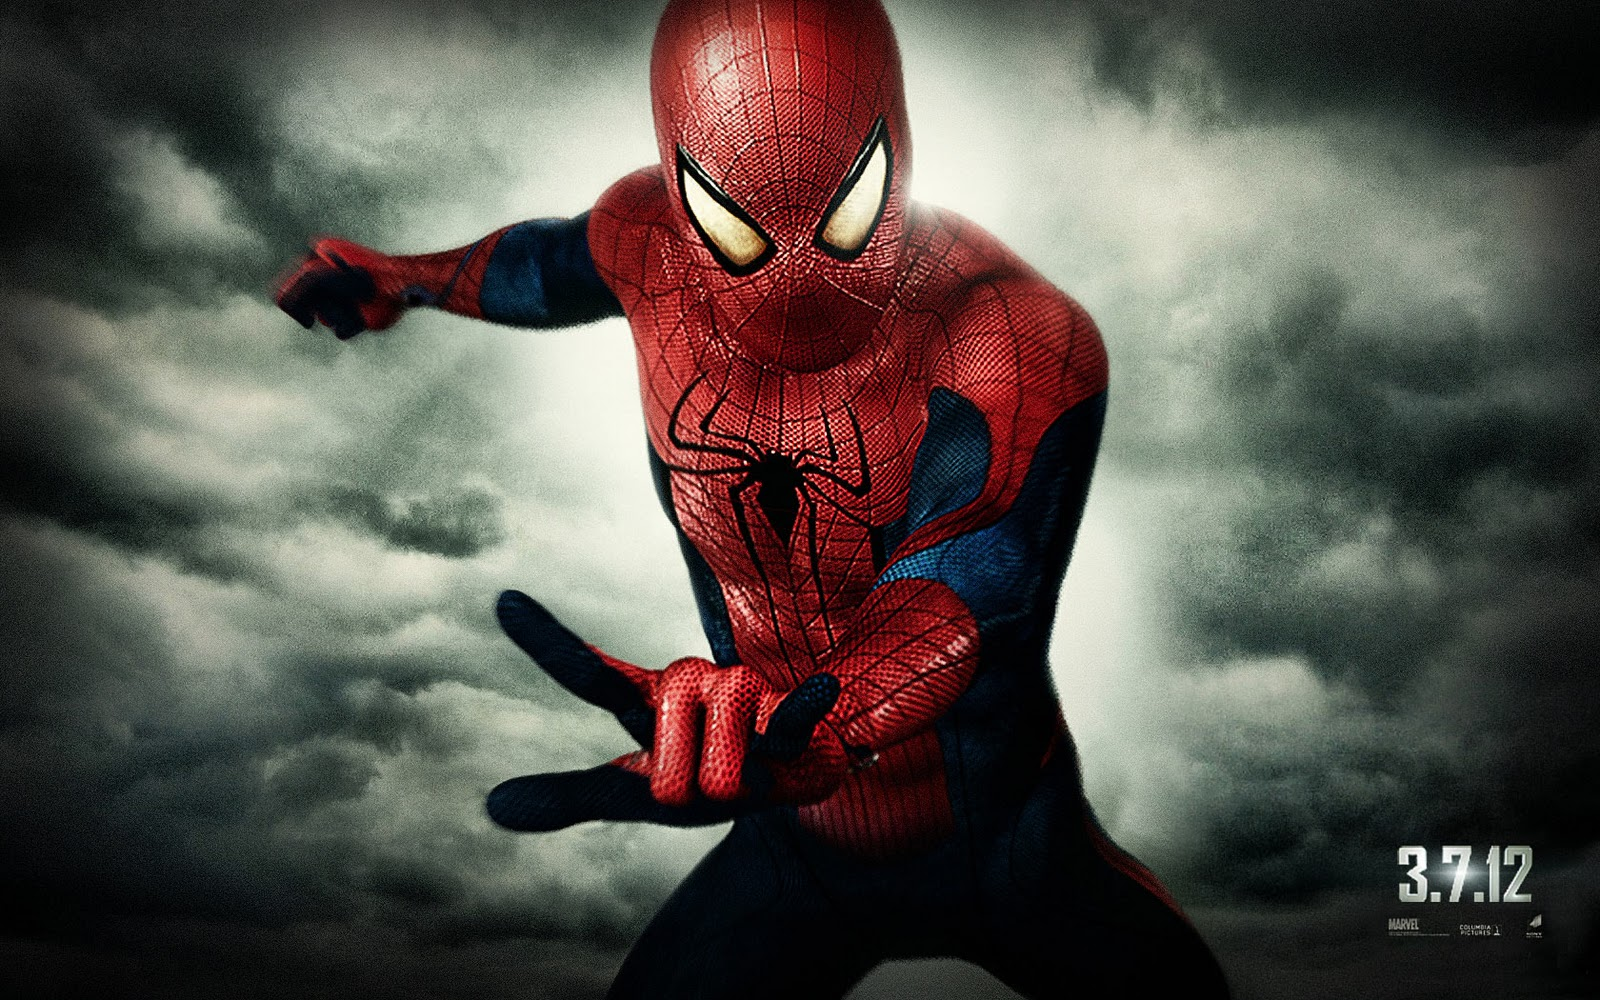 the amazing spider man movie new hd wallpapers 2012 | hollywood